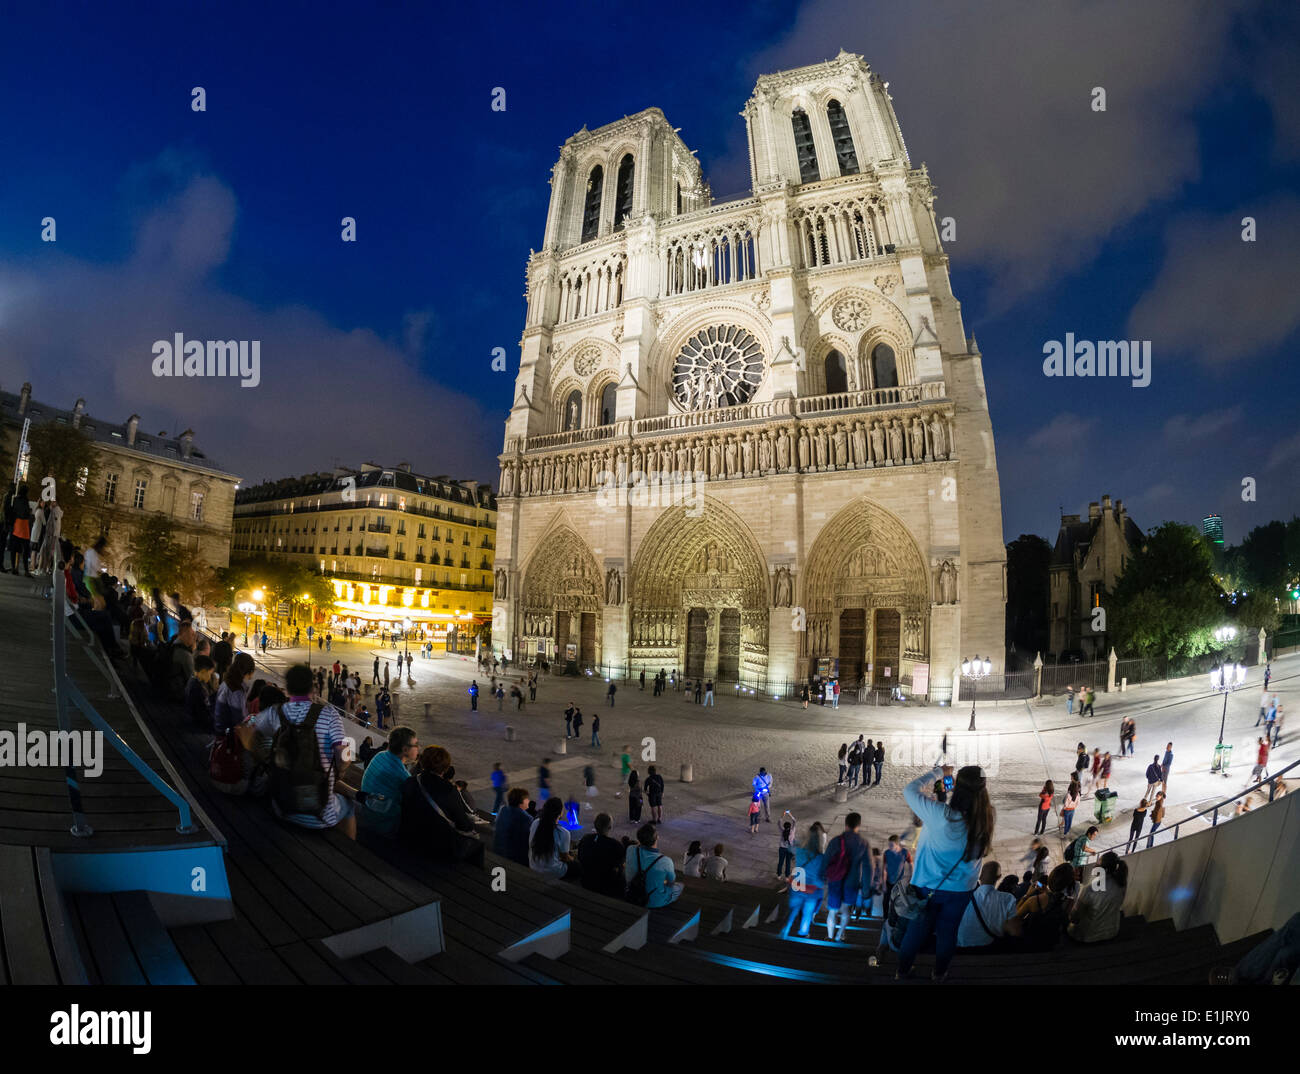 Tourists visit Notre Dame cathedral in Paris late in the evening. - Stock Image